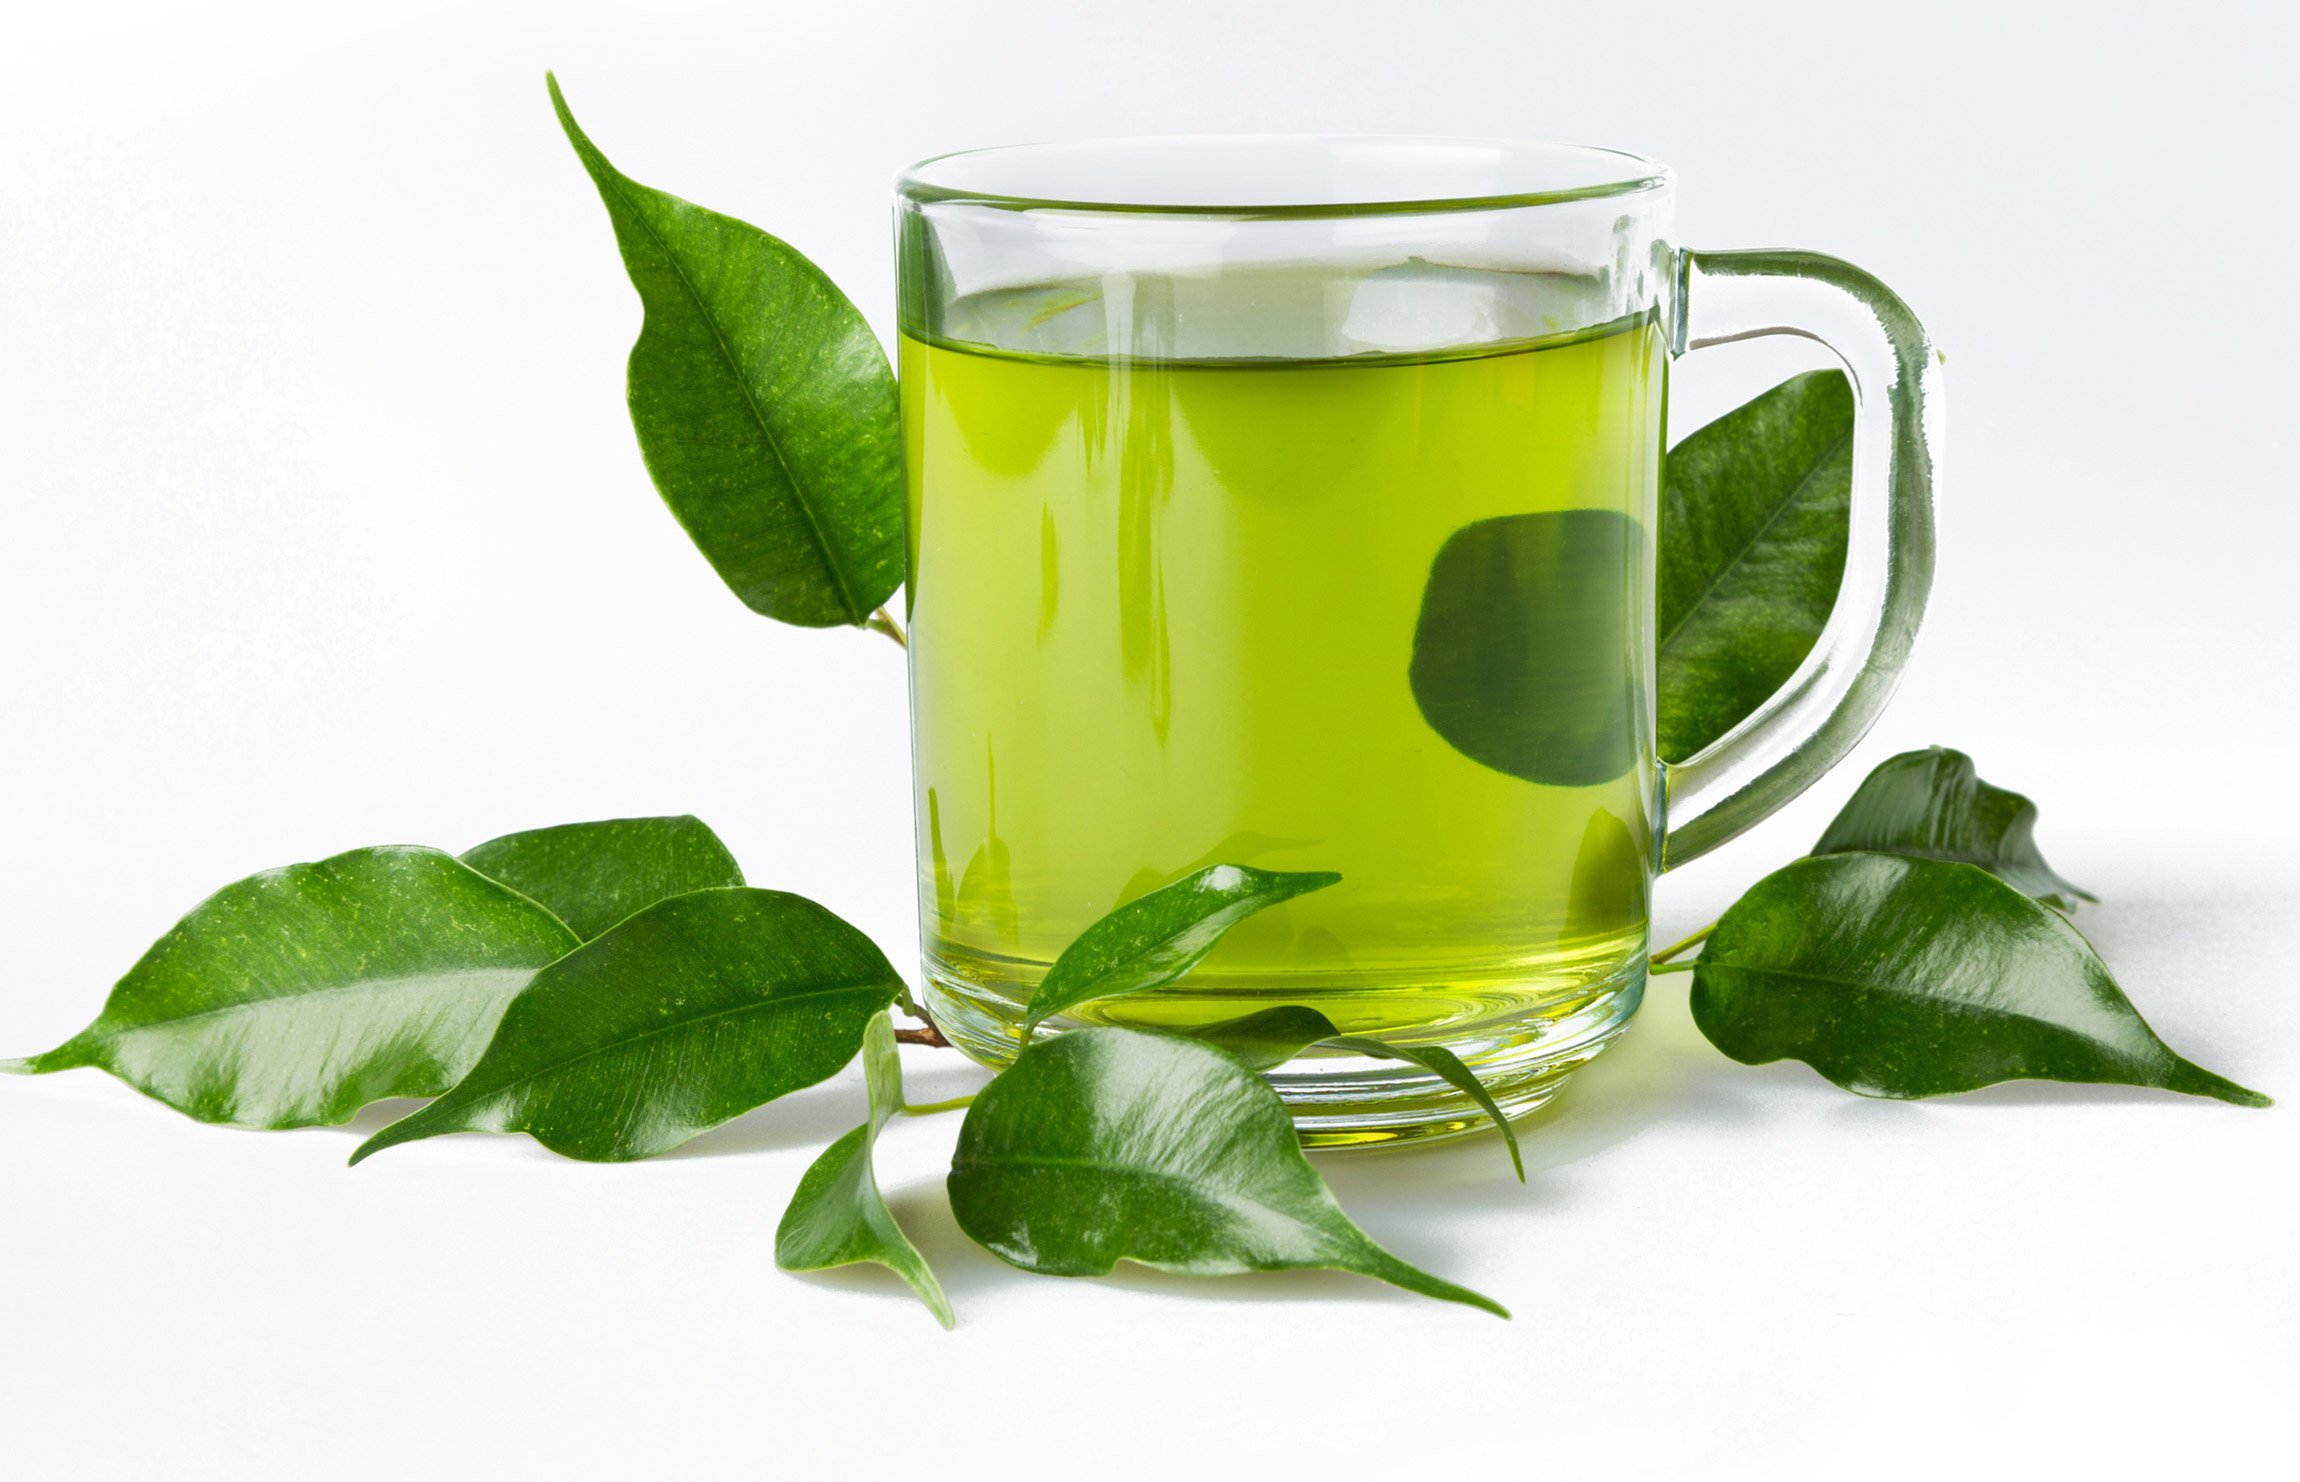 clear glass of green tea with leaves